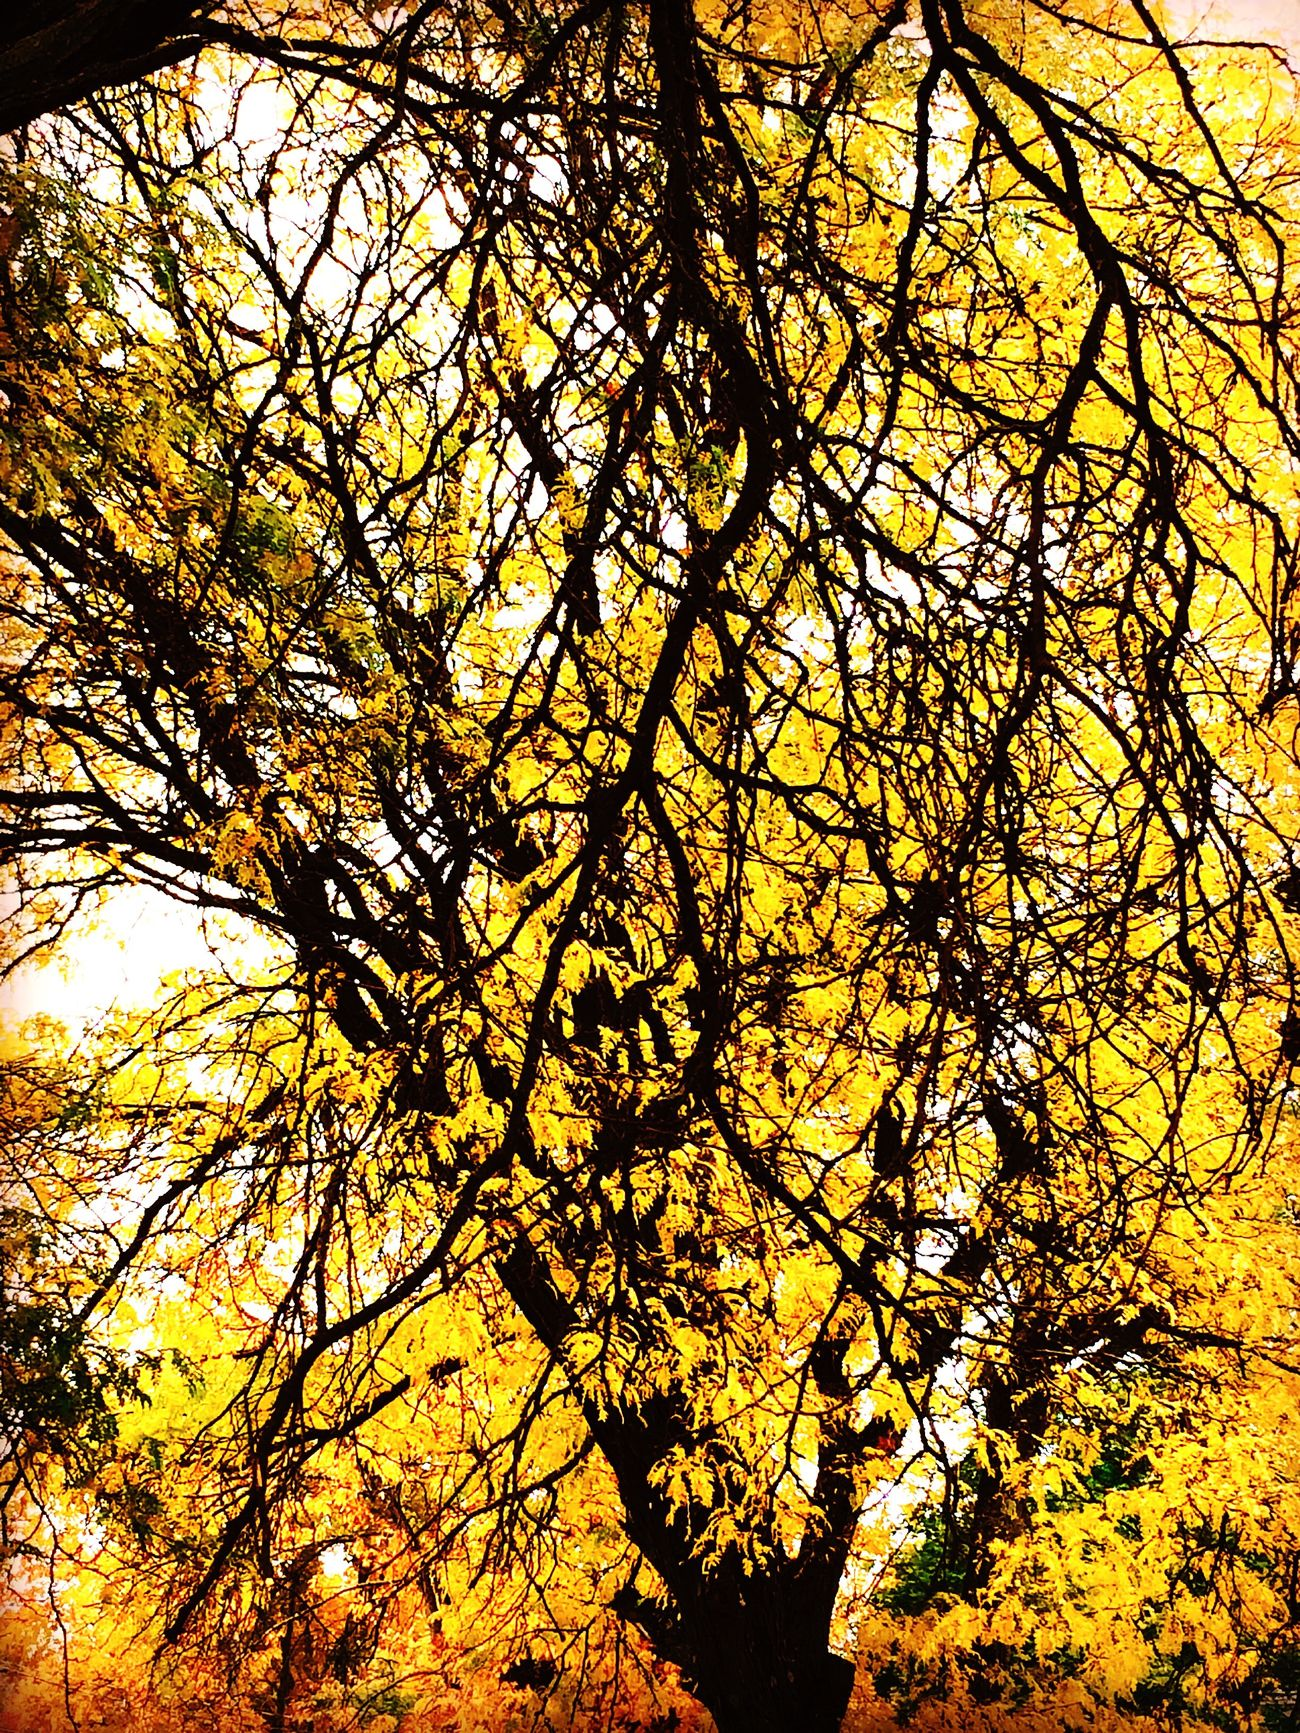 Tree Nature Beauty In Nature No People Branch Growth Low Angle View Tranquility Yellow Outdoors Scenics Backgrounds Sky Close-up Day Branches Black And Yellow  Orange